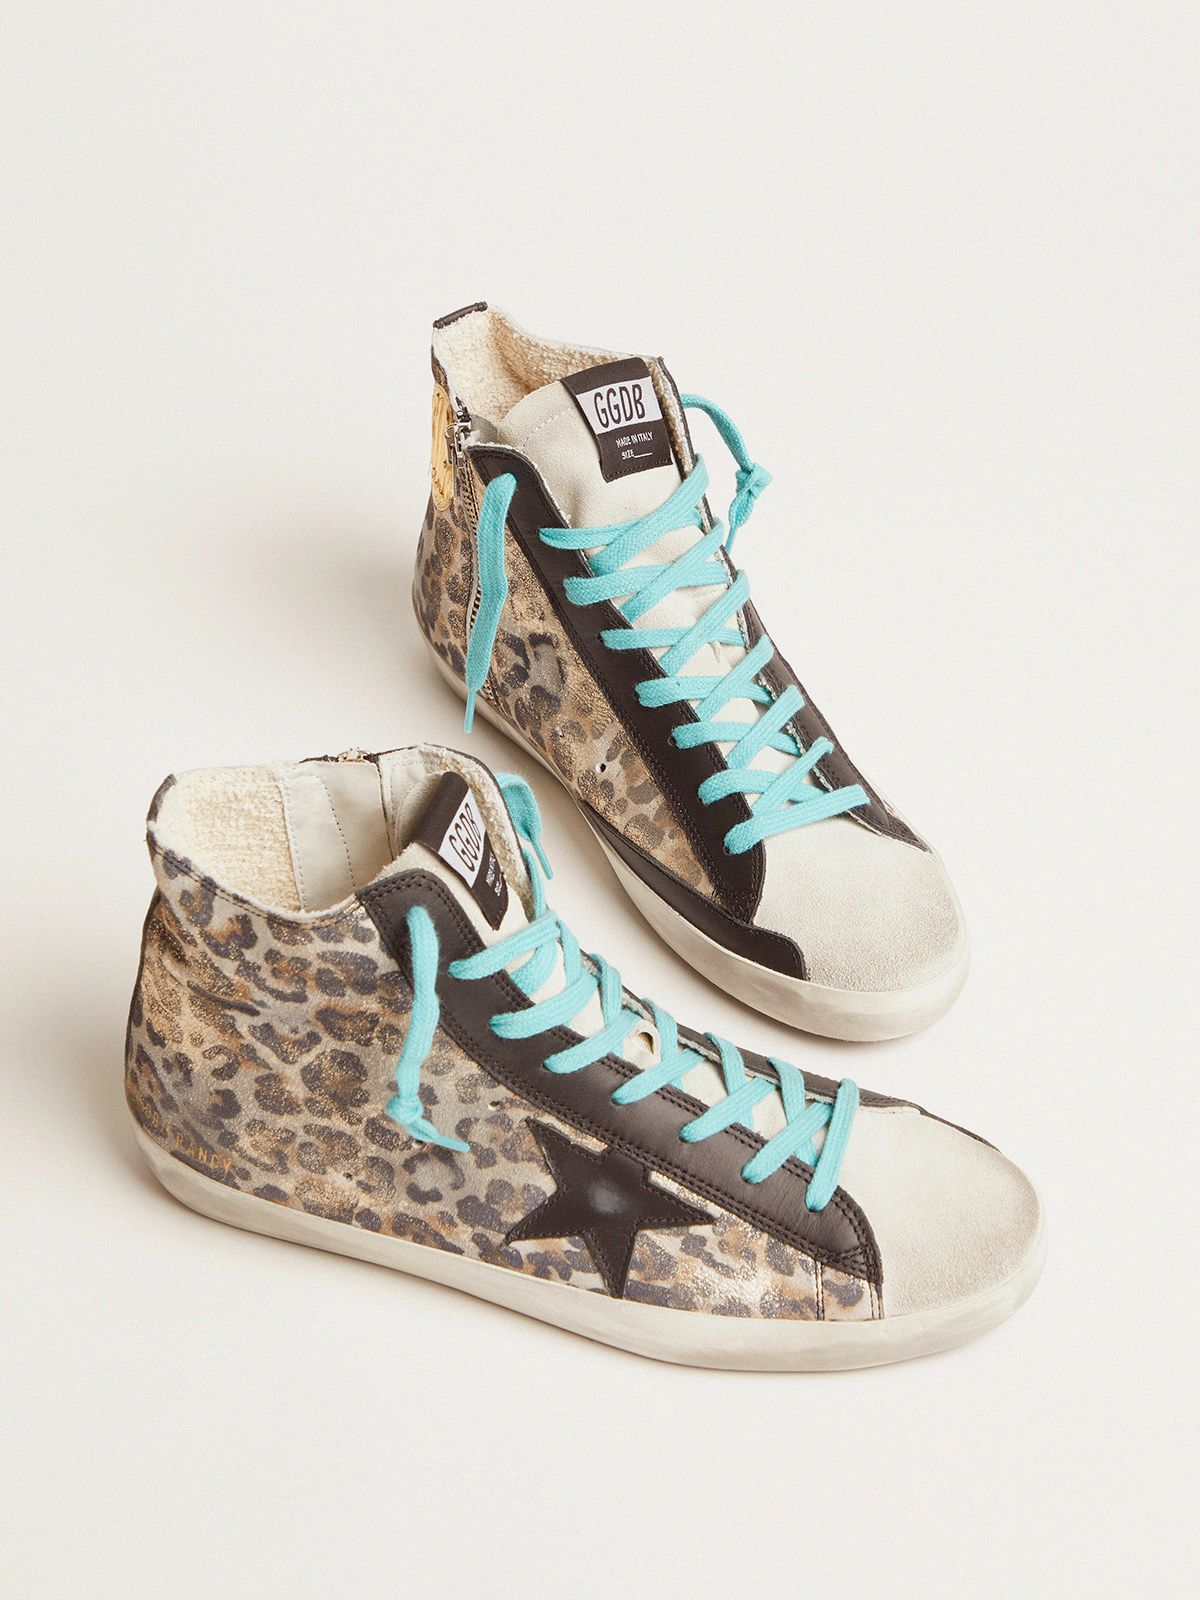 Golden Goose - Leopard-print Francy sneakers with blue laces in